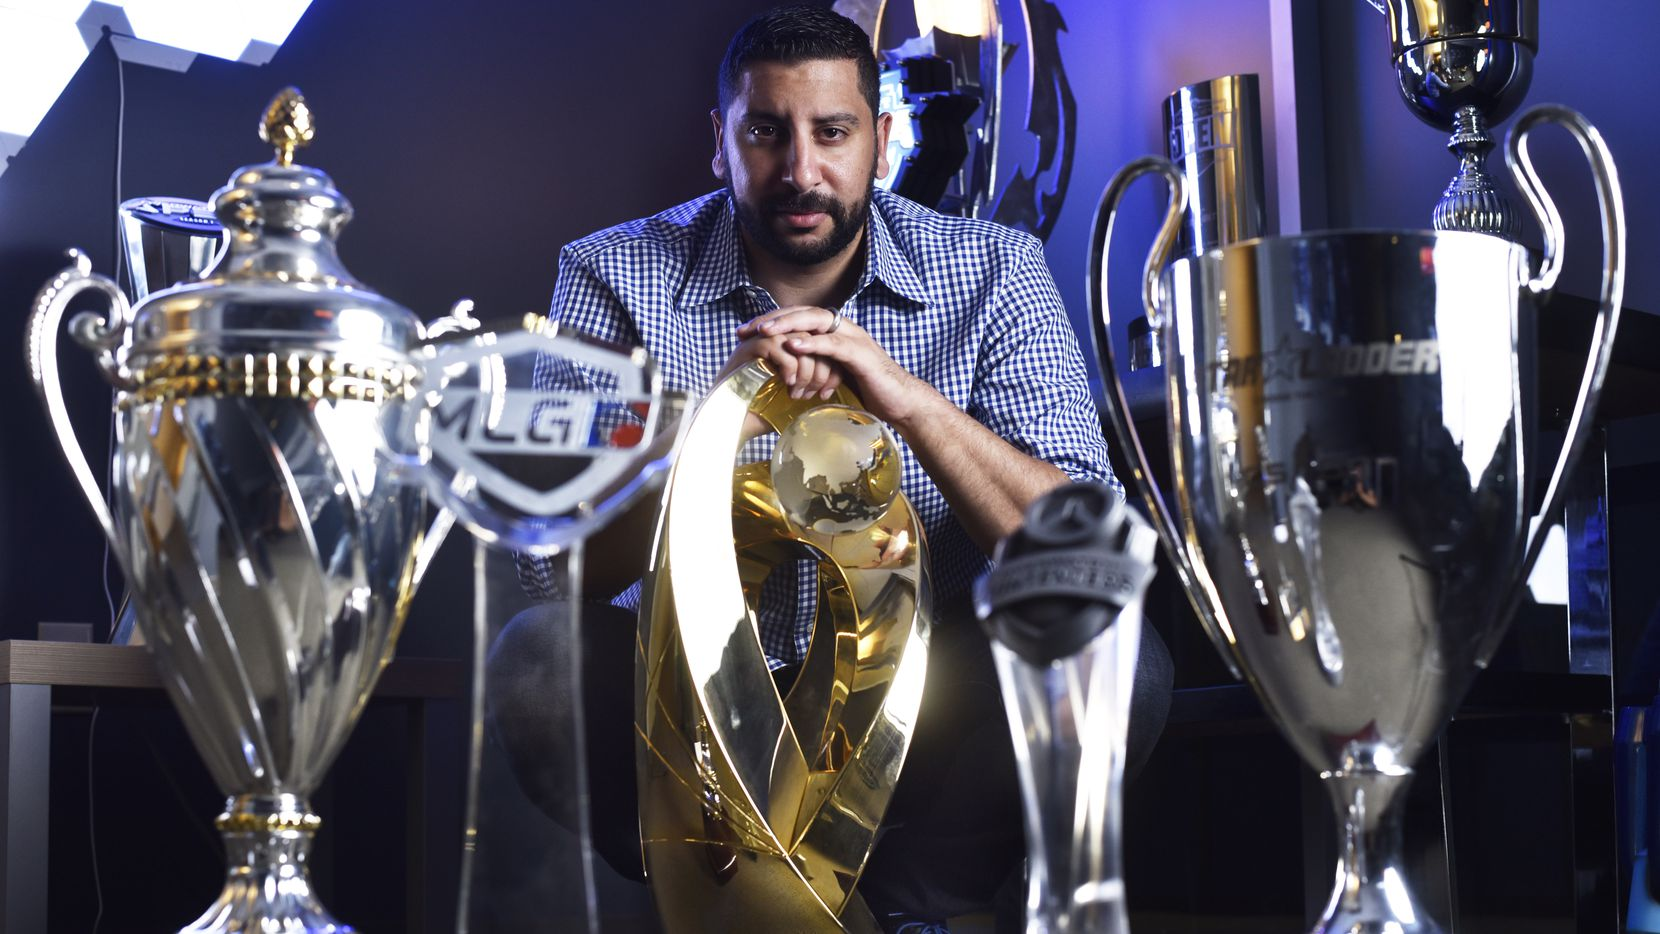 Mike Rufail, chief executive officer and owner of Envy Gaming and the Dallas Fuel, poses with with several esports championship trophies at their offices in Dallas in August.. The trophy in the middle is from the 2016 World Electronic Sports Games in China for the CS:GO team.